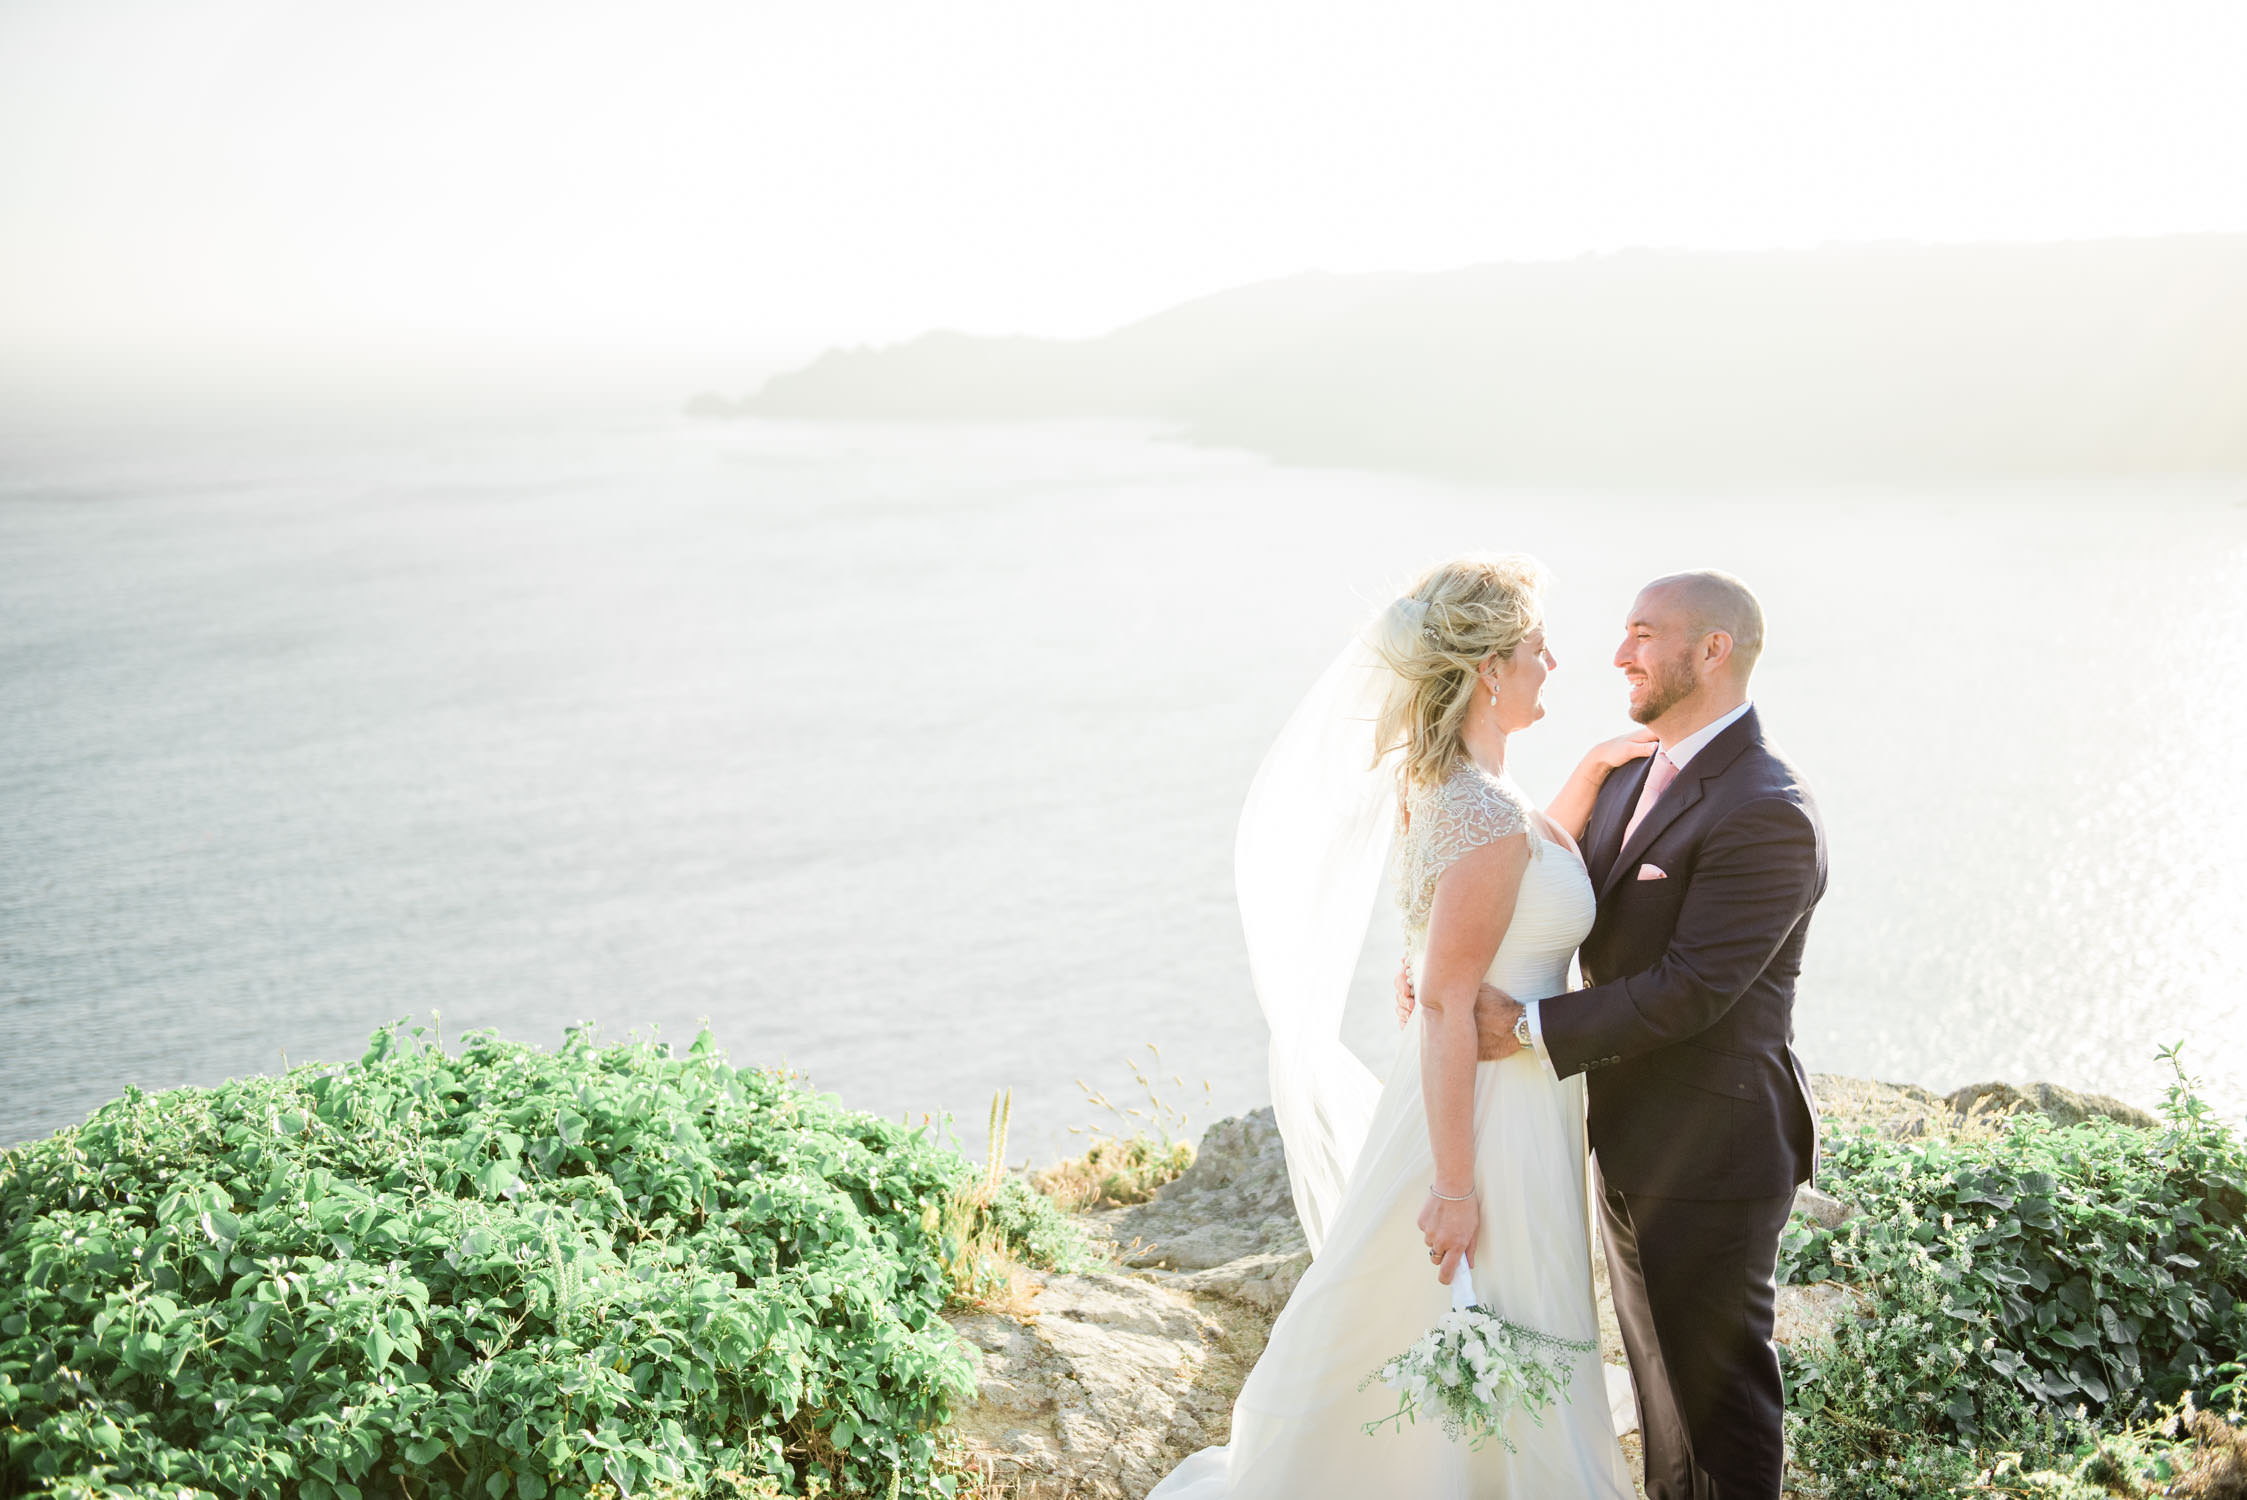 A bride and groom at a cliff in Icard, Guernsey